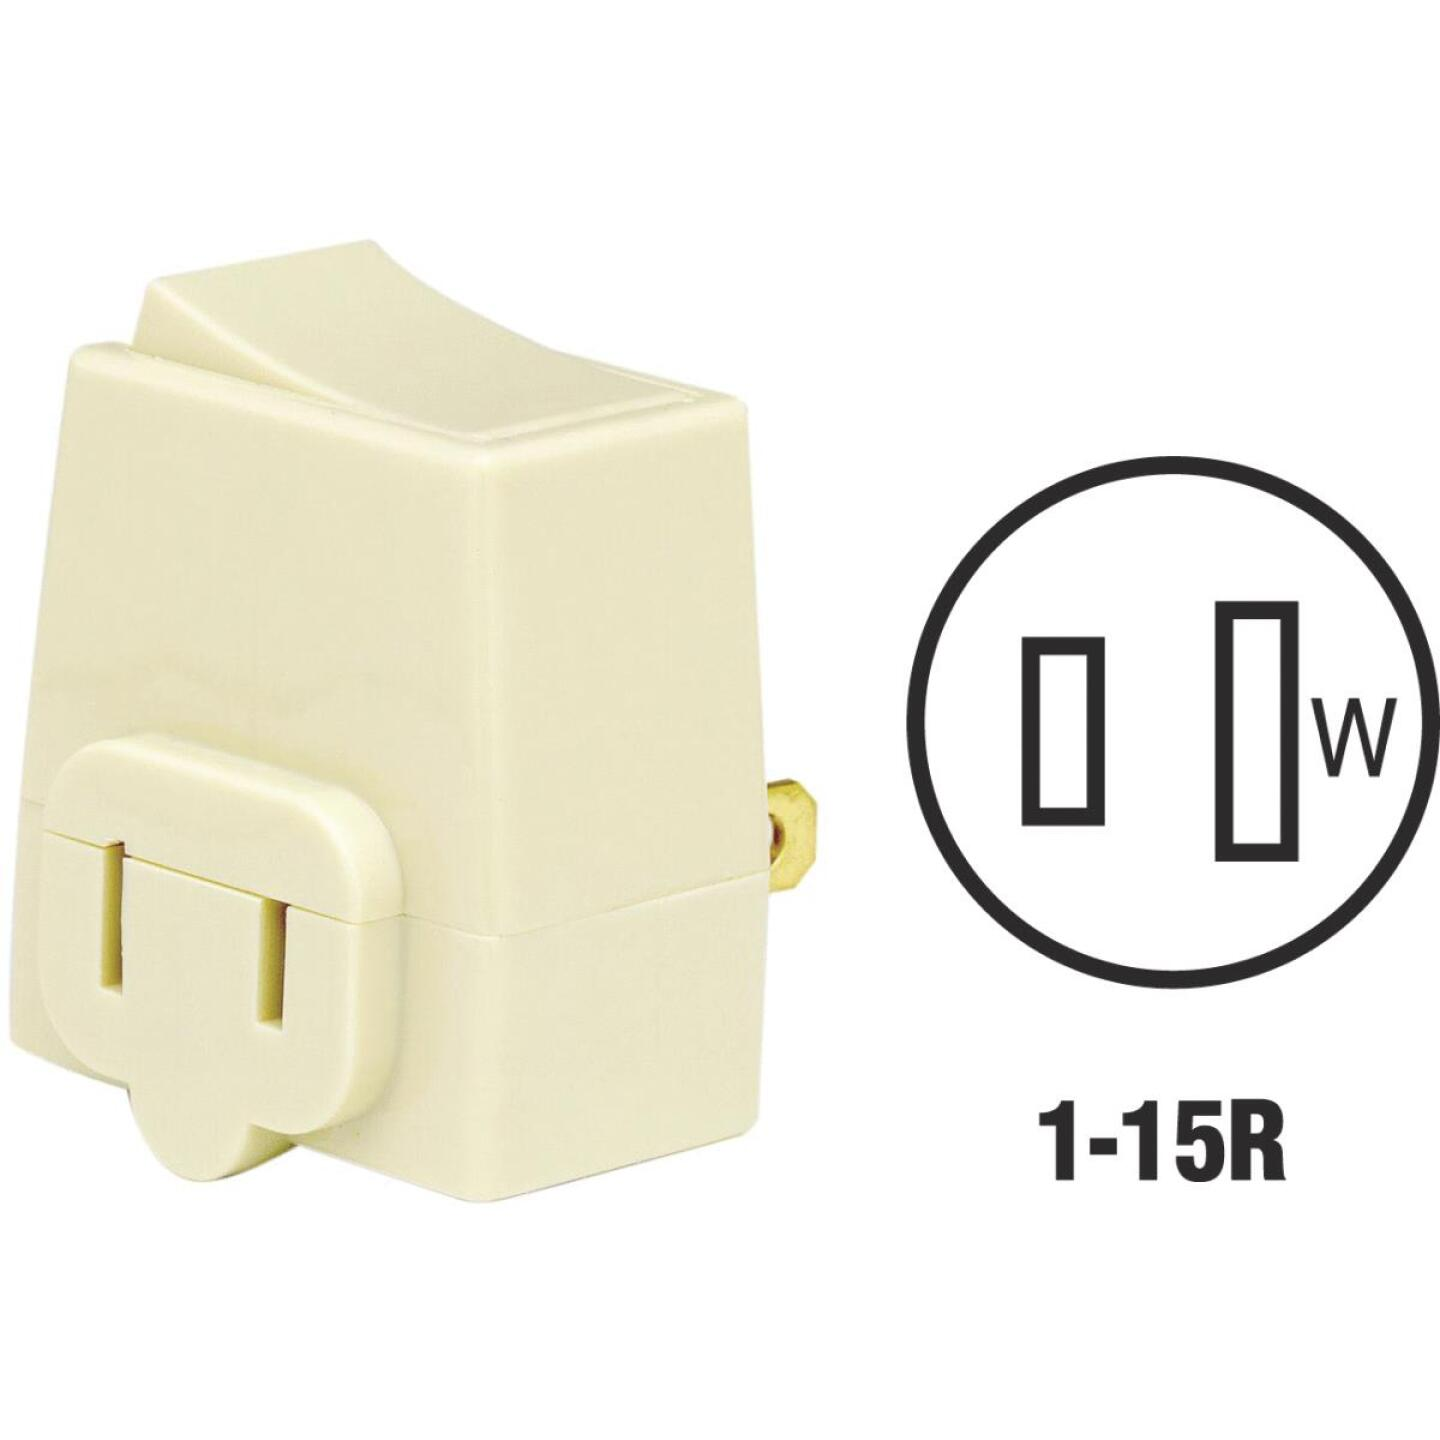 Leviton Ivory 13A Plug-In Switch Adapter Image 1